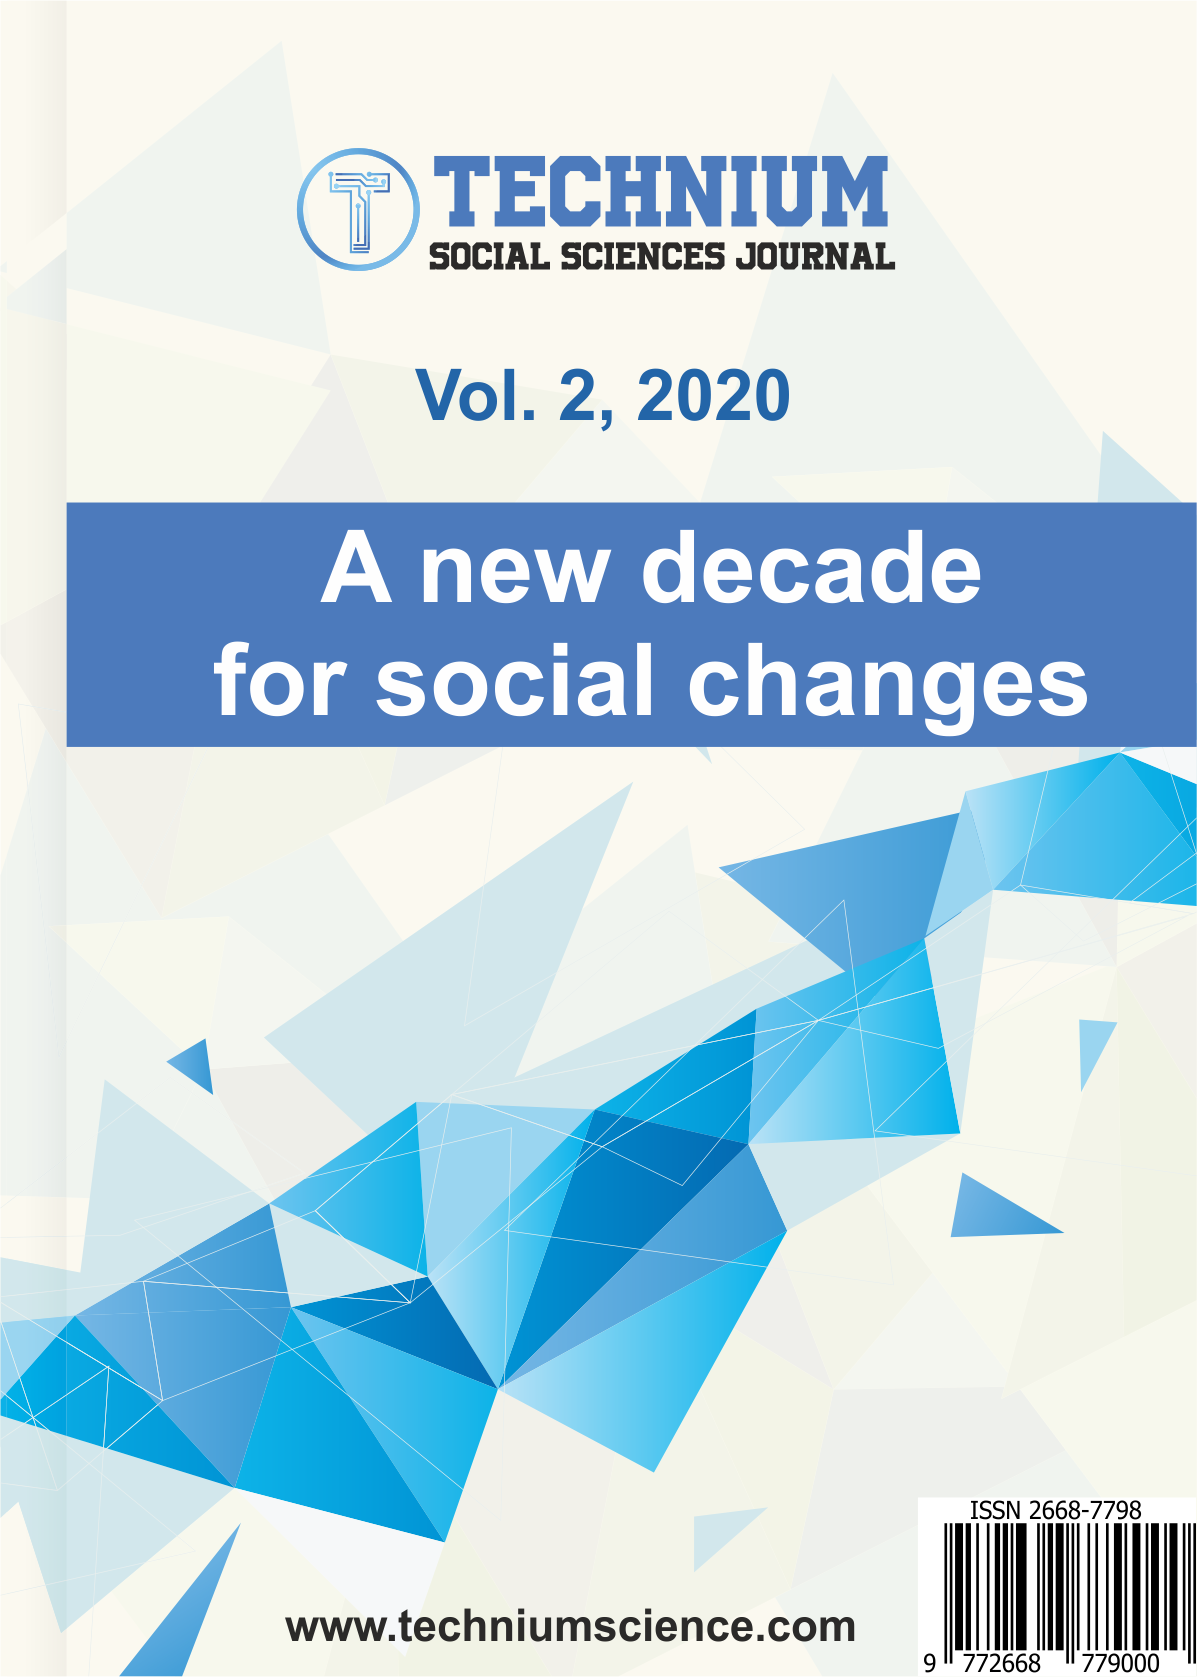 View Vol. 2 (2020): A new decade for social changes